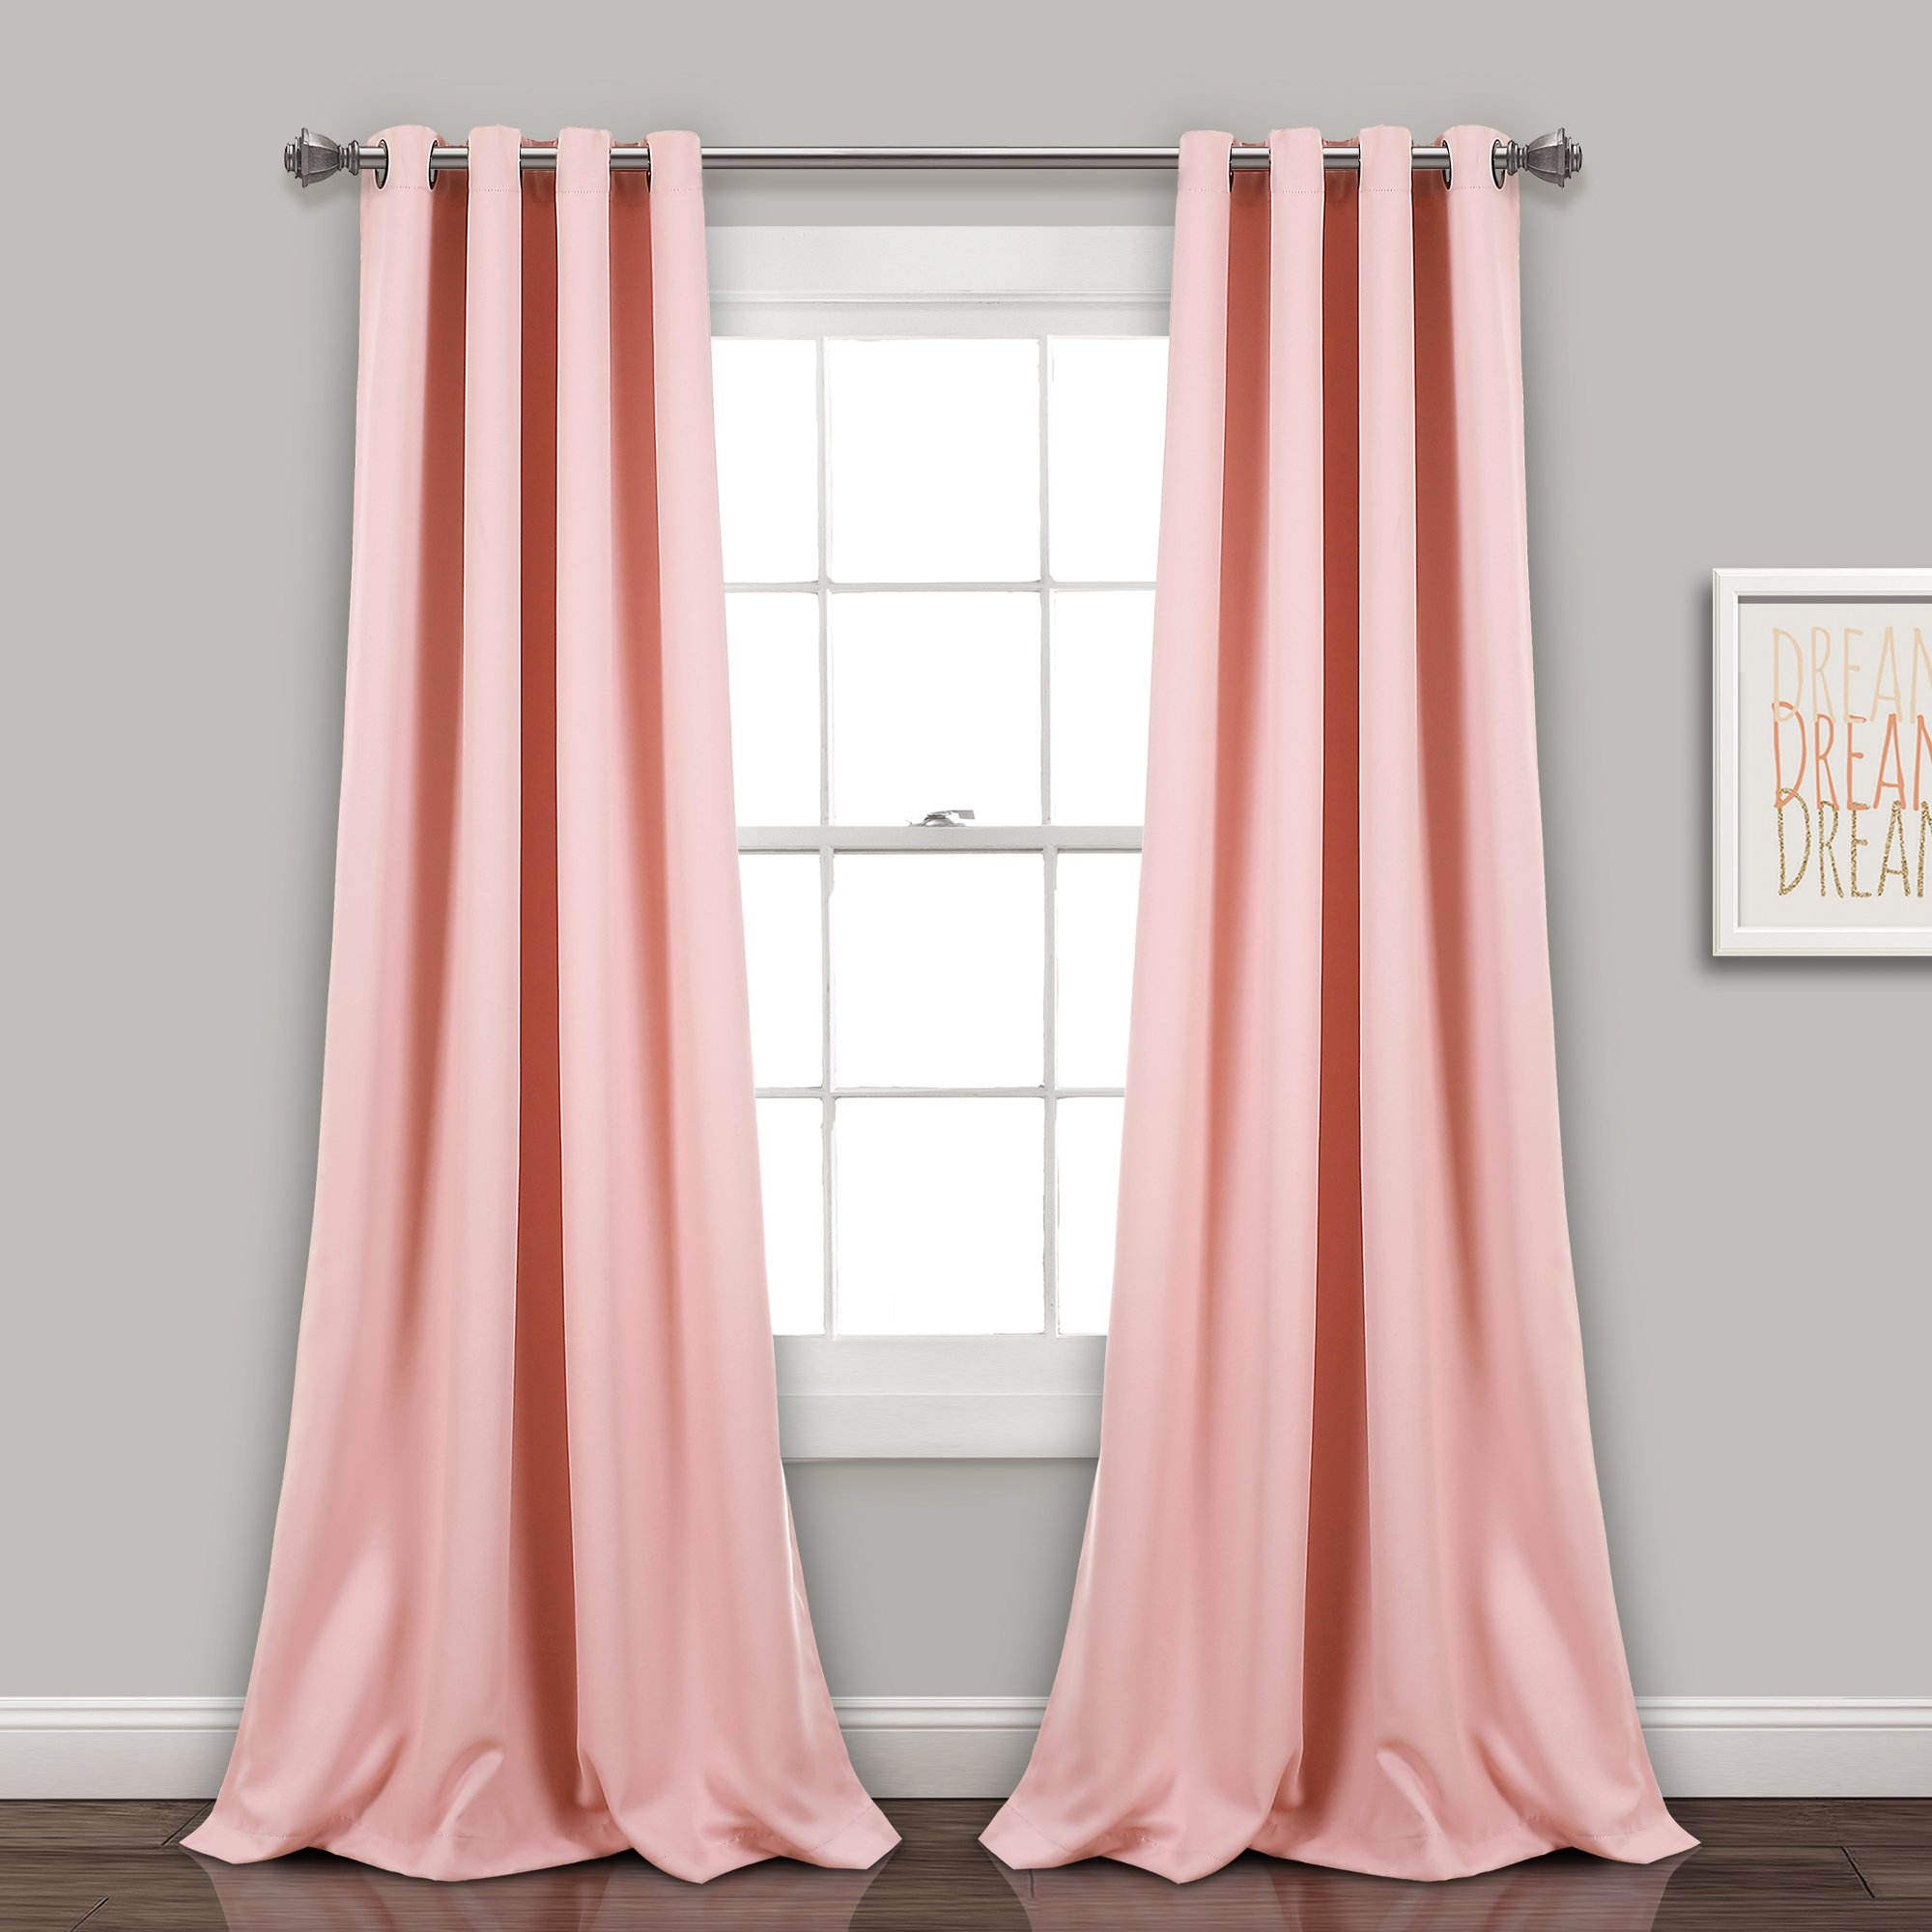 Lush Decor 16T002464 Insulated Grommet Blackout Window Curtain Panel Pair, Pink Throughout Insulated Grommet Blackout Curtain Panel Pairs (View 12 of 20)